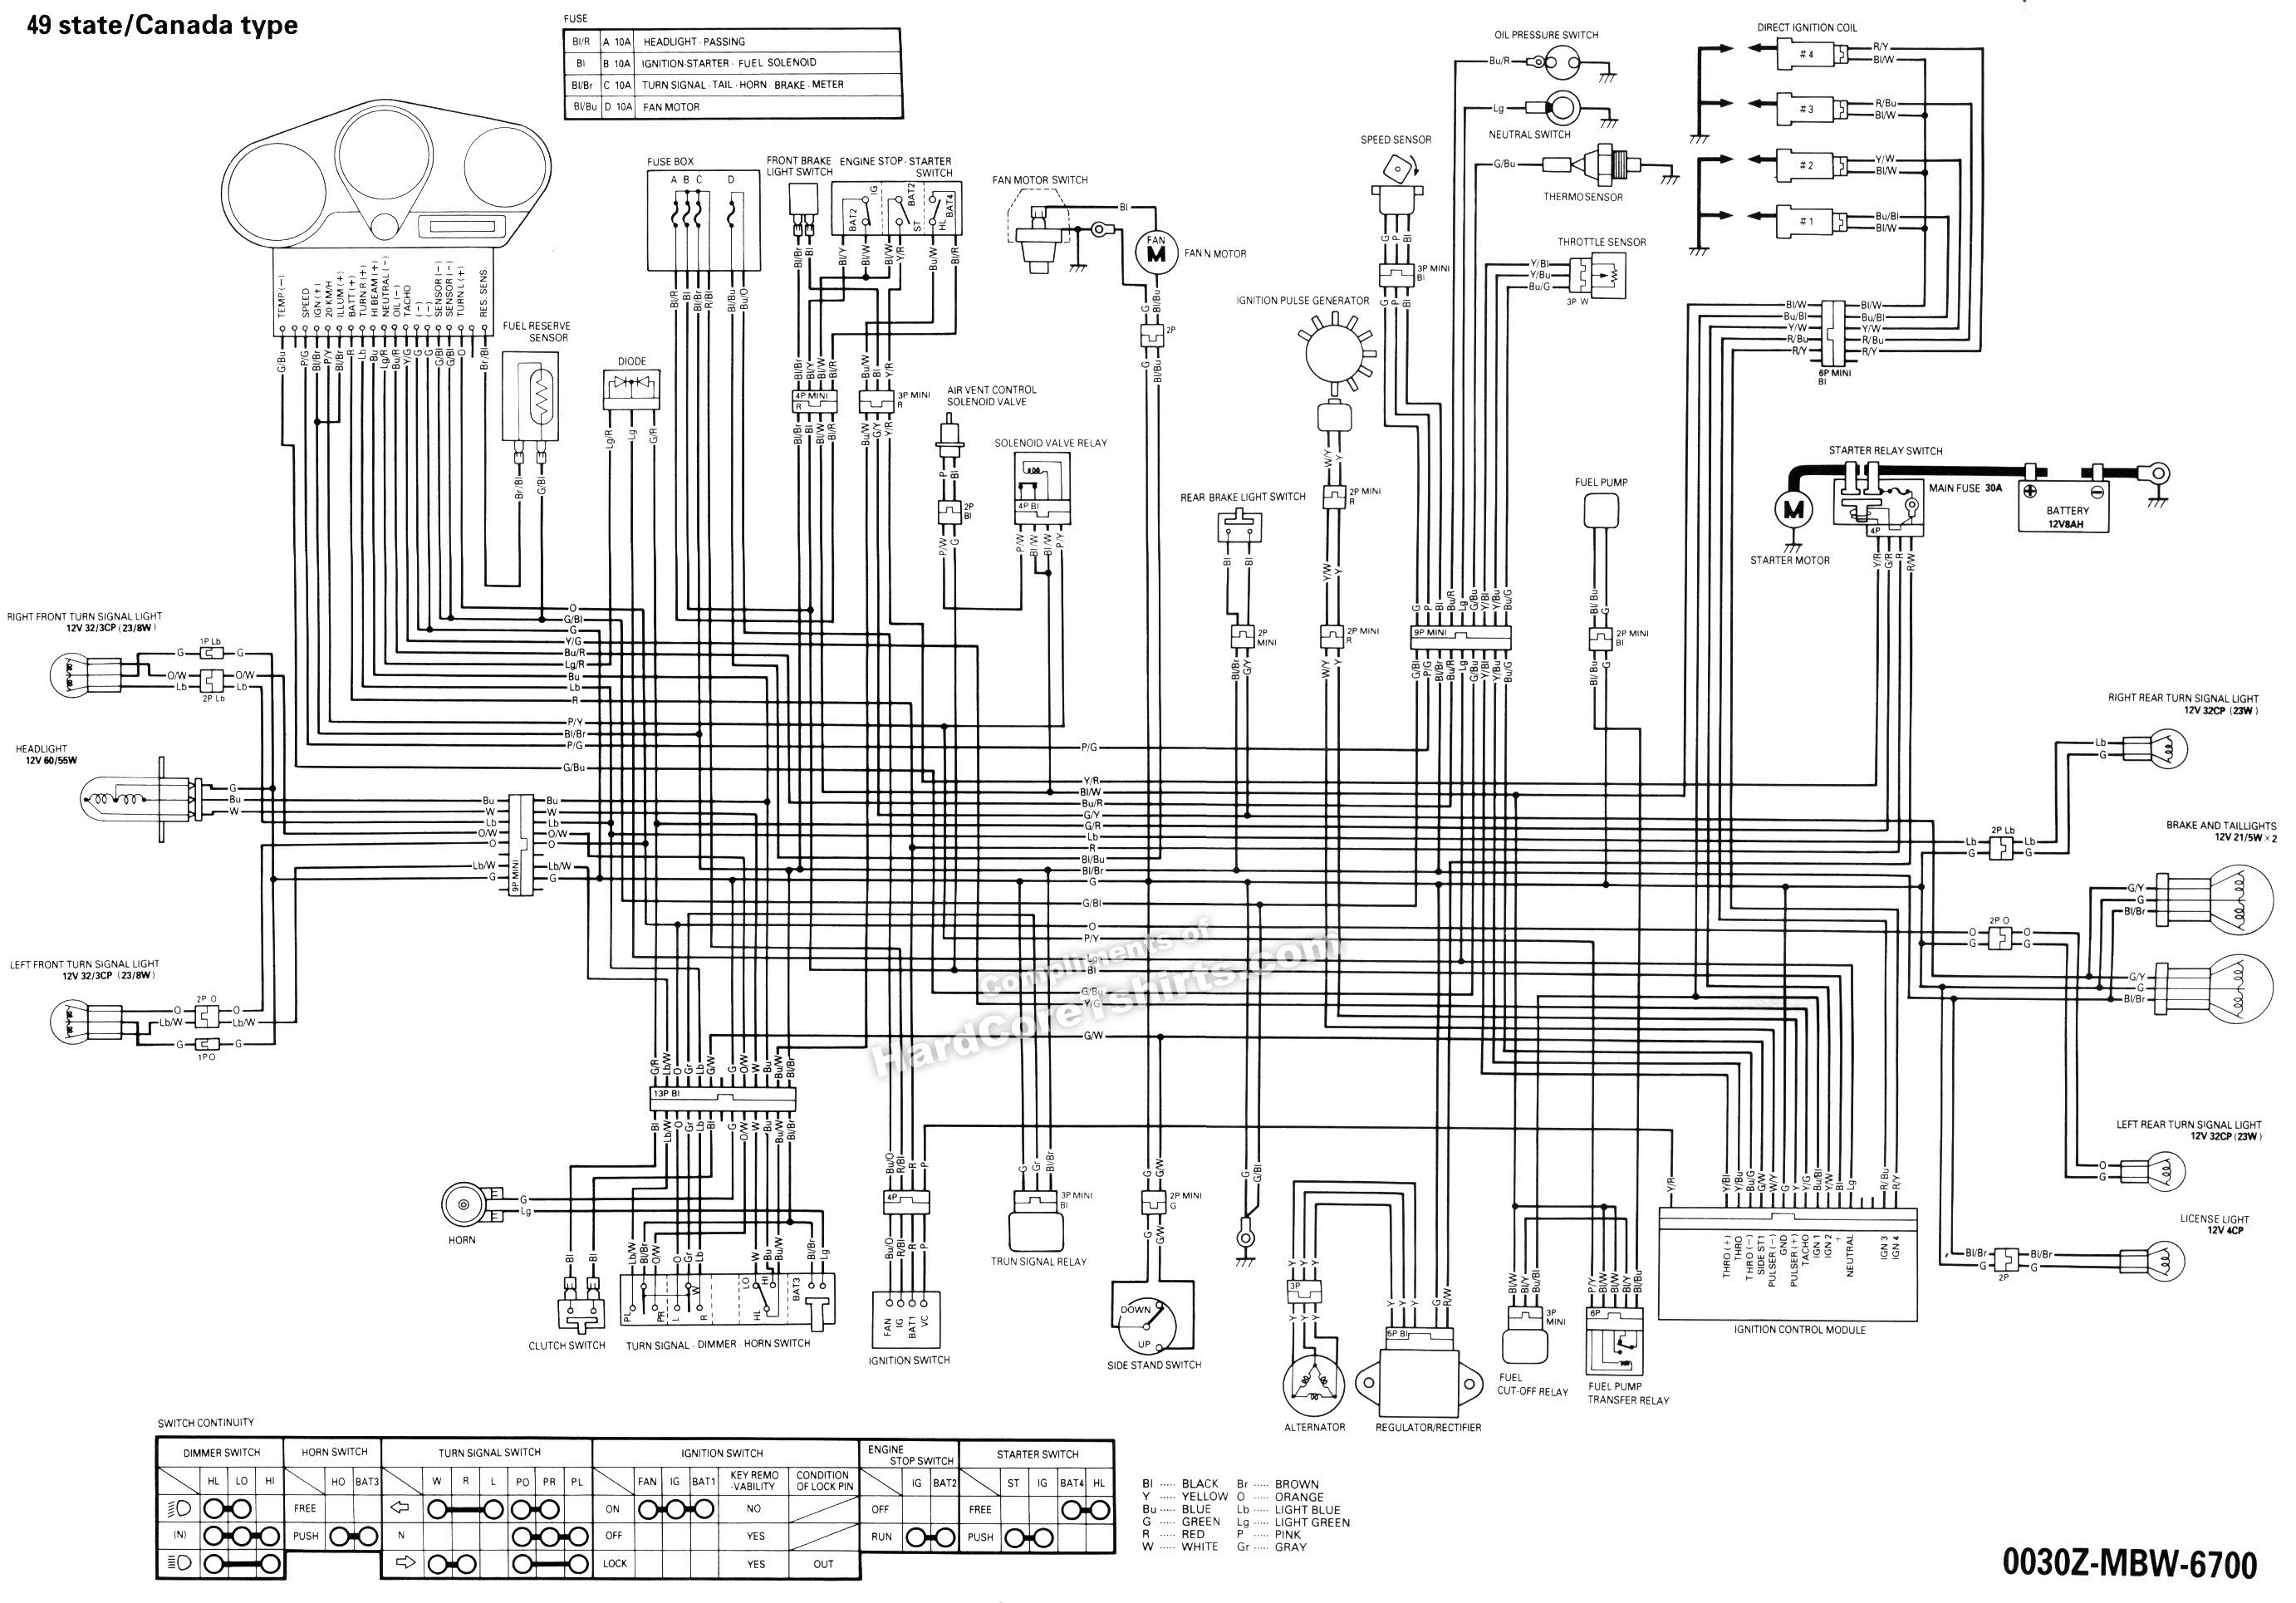 Download [DIAGRAM] 2009 Honda Cbr1000rr Wiring Diagram FULL Version HD  Quality Wiring Diagram - DIAGRAMSONG.ITISRIGHI.ITitisrighi.it